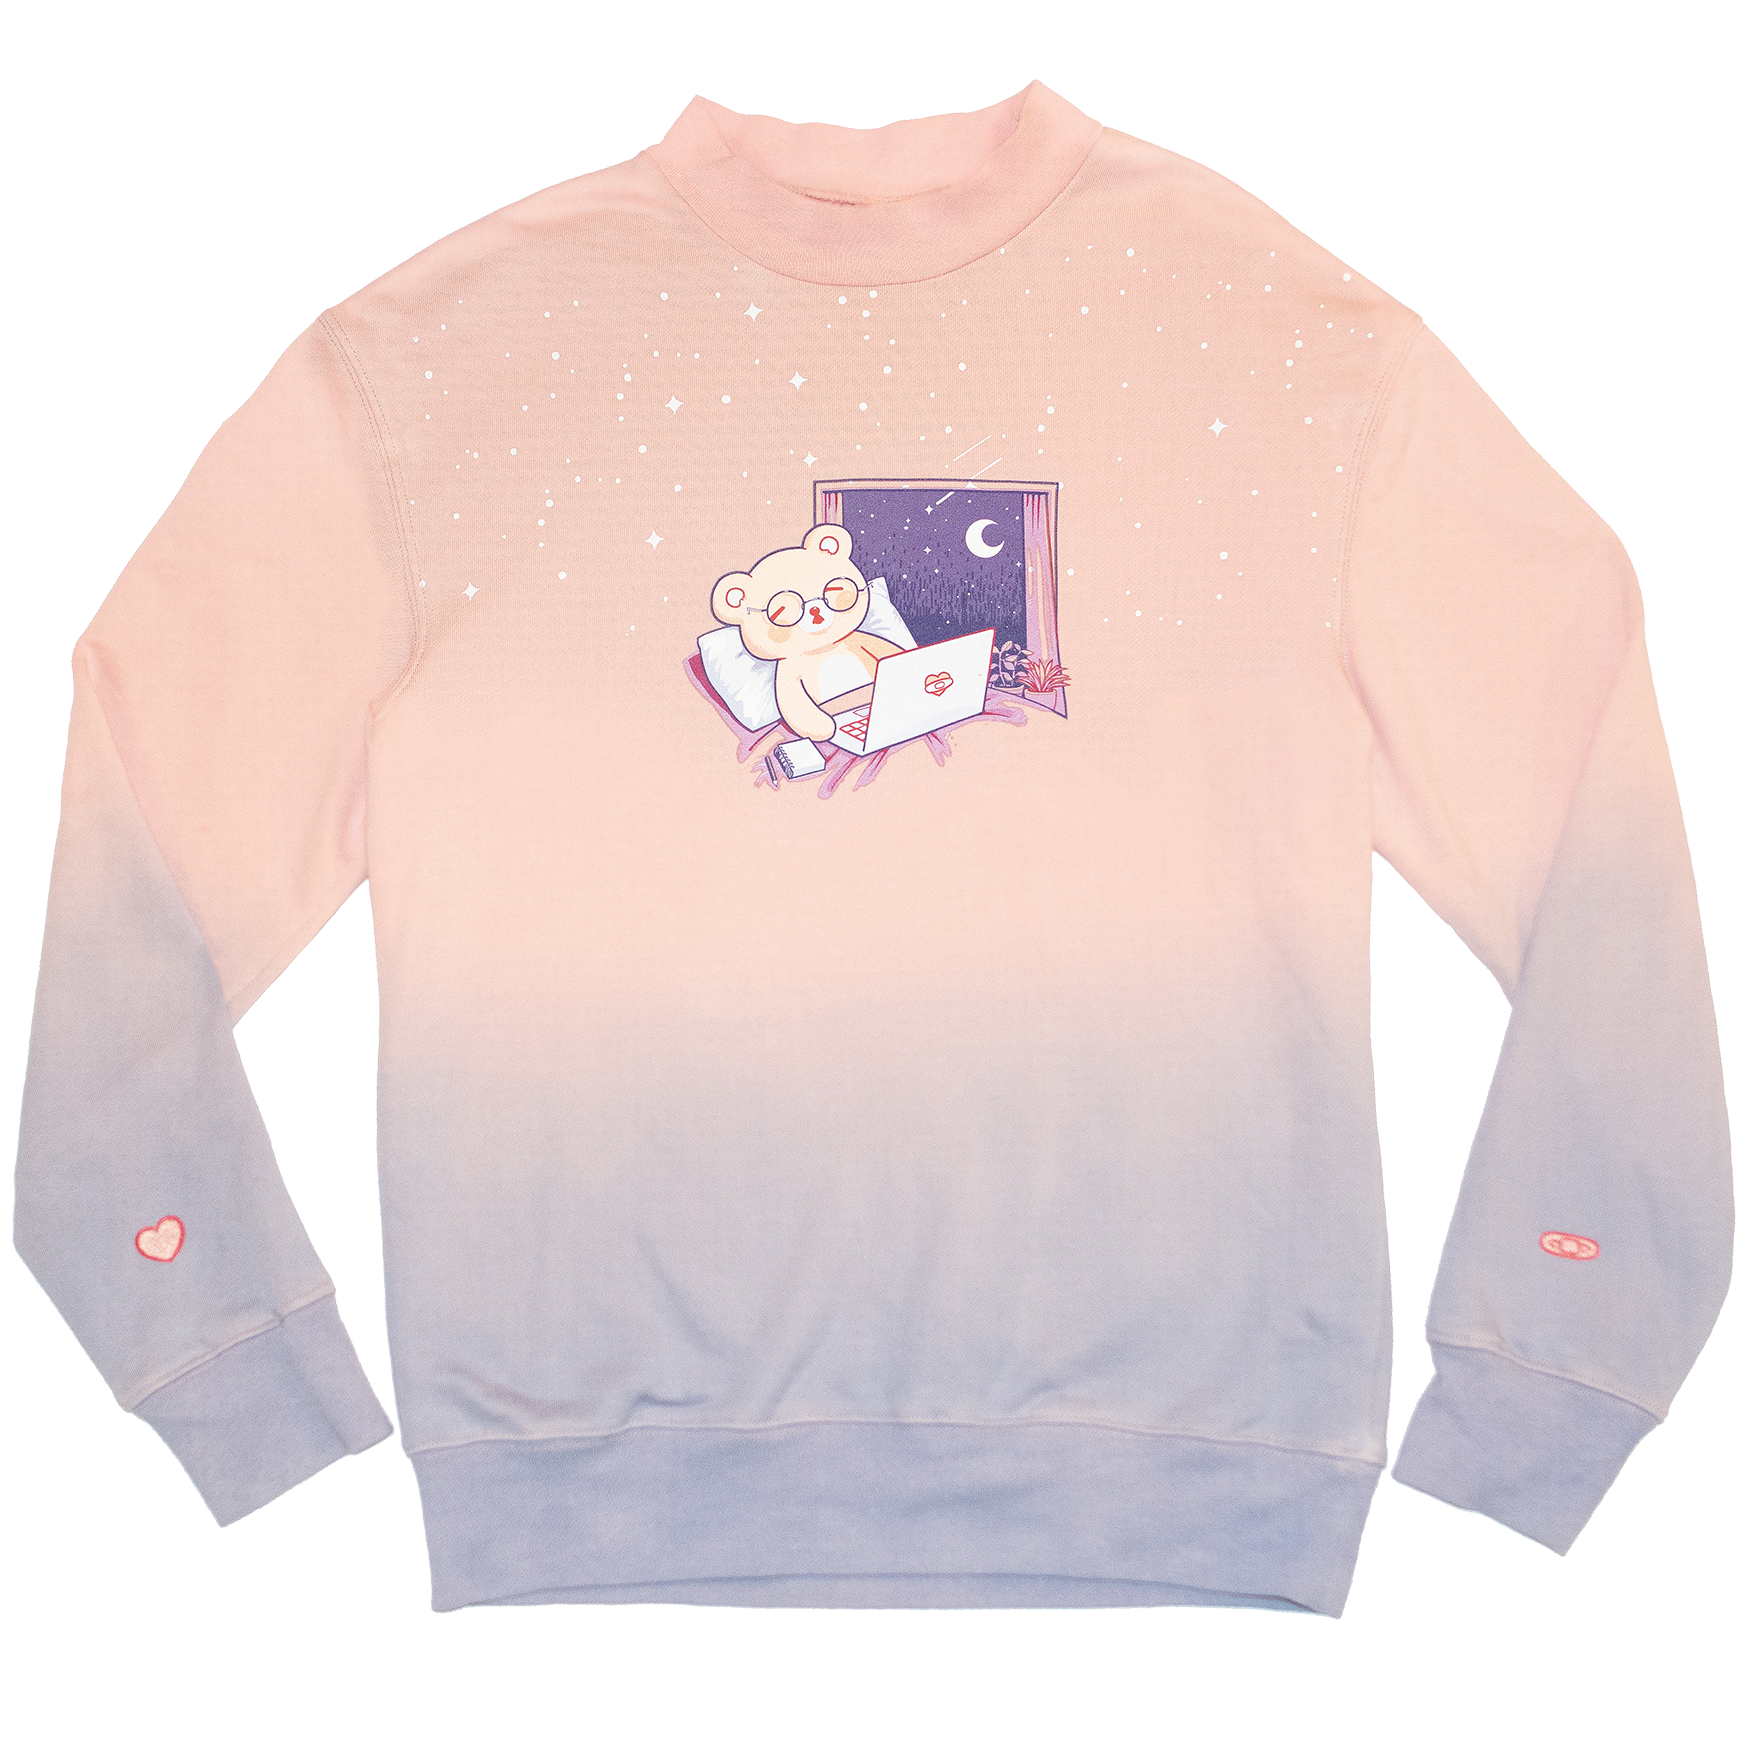 teddy sweater product shot